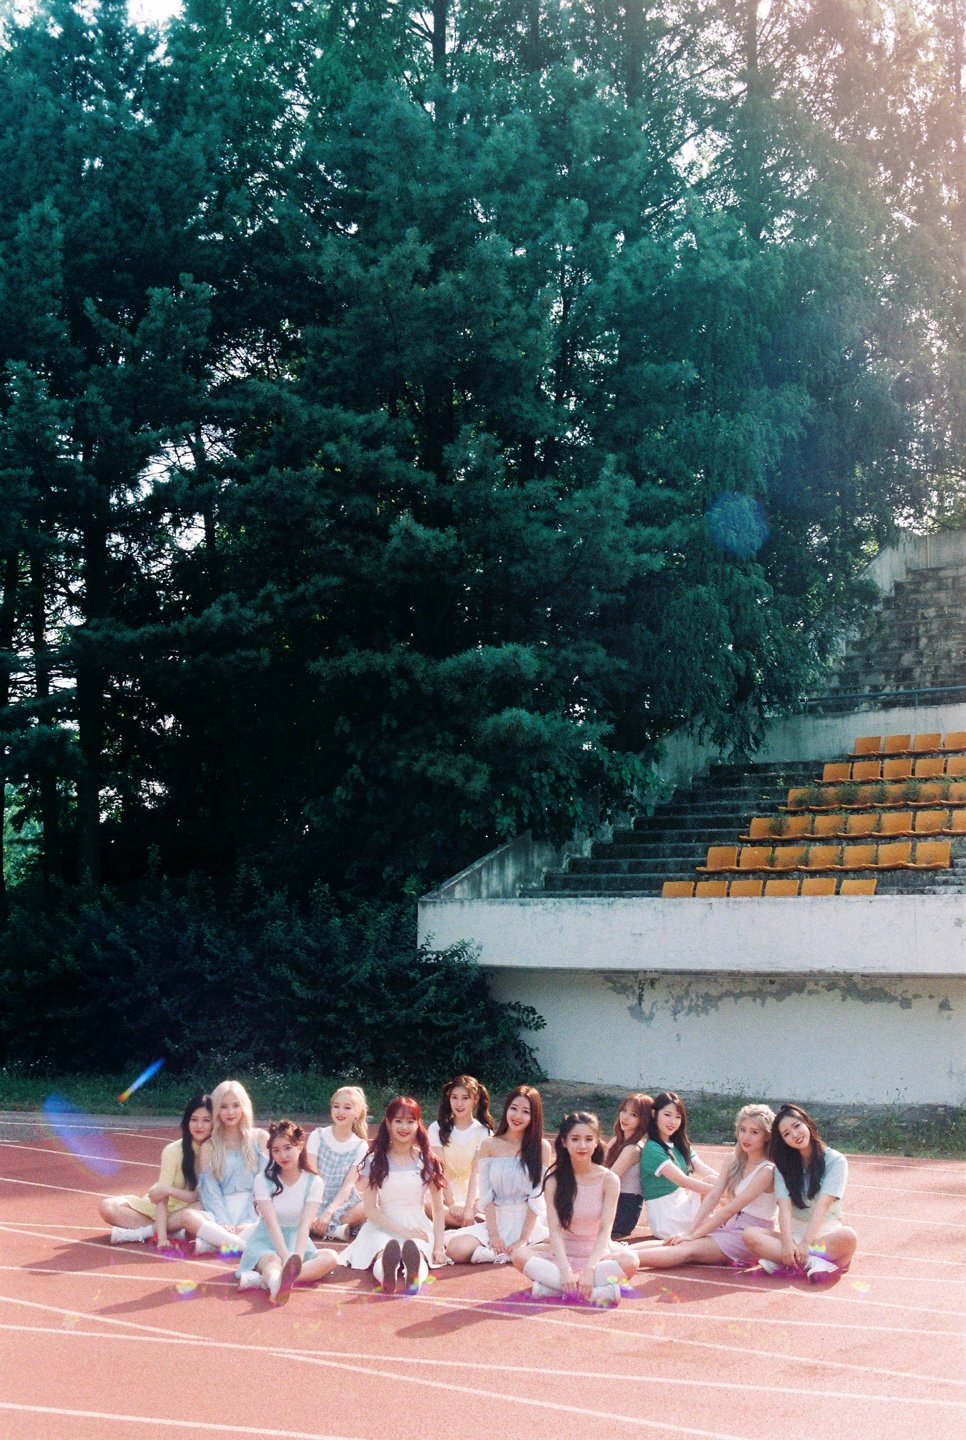 LOONA ++ group photo v2.png